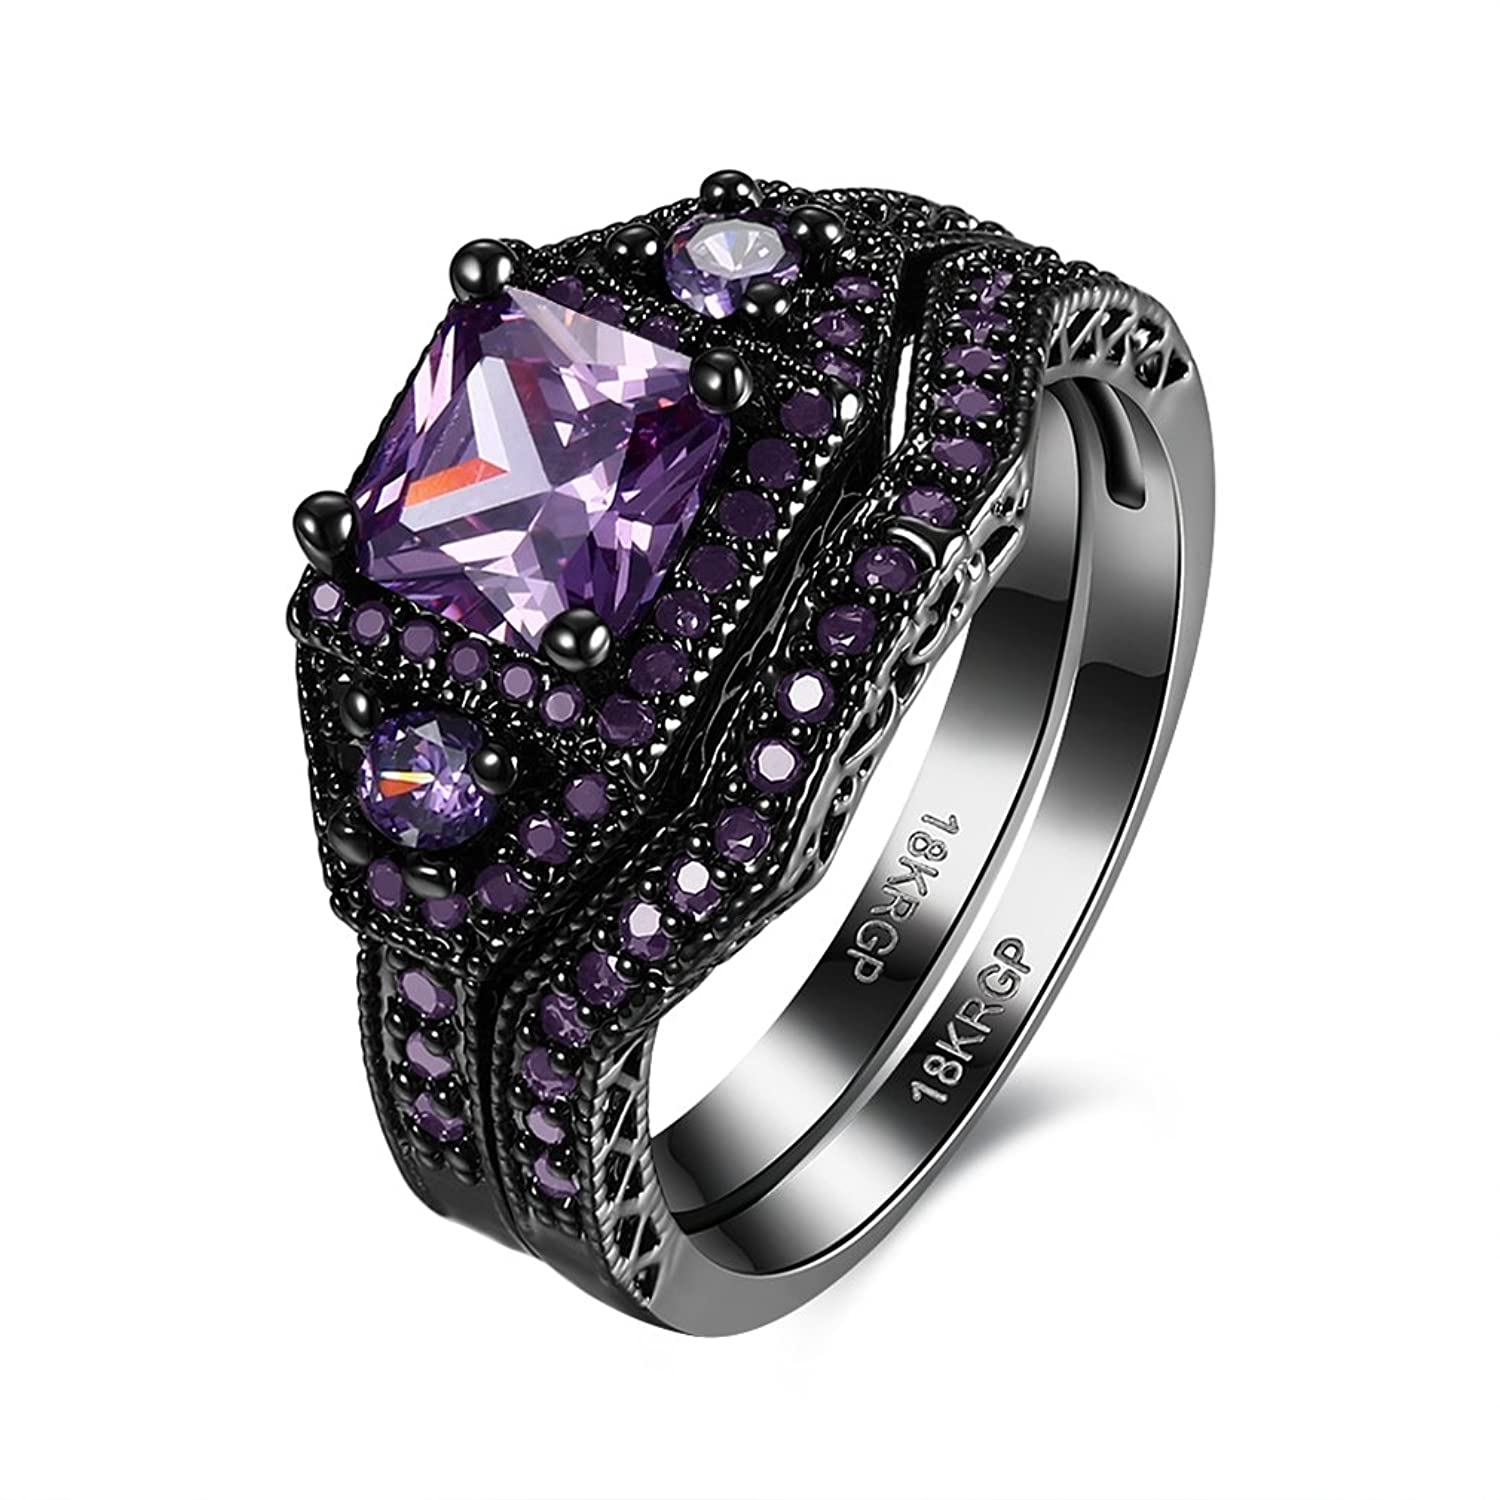 product watches amethyst set overstock mens jewelry stone sterling carat rings purple wisdom artisan shipping silver today in bezel handmade warrior free